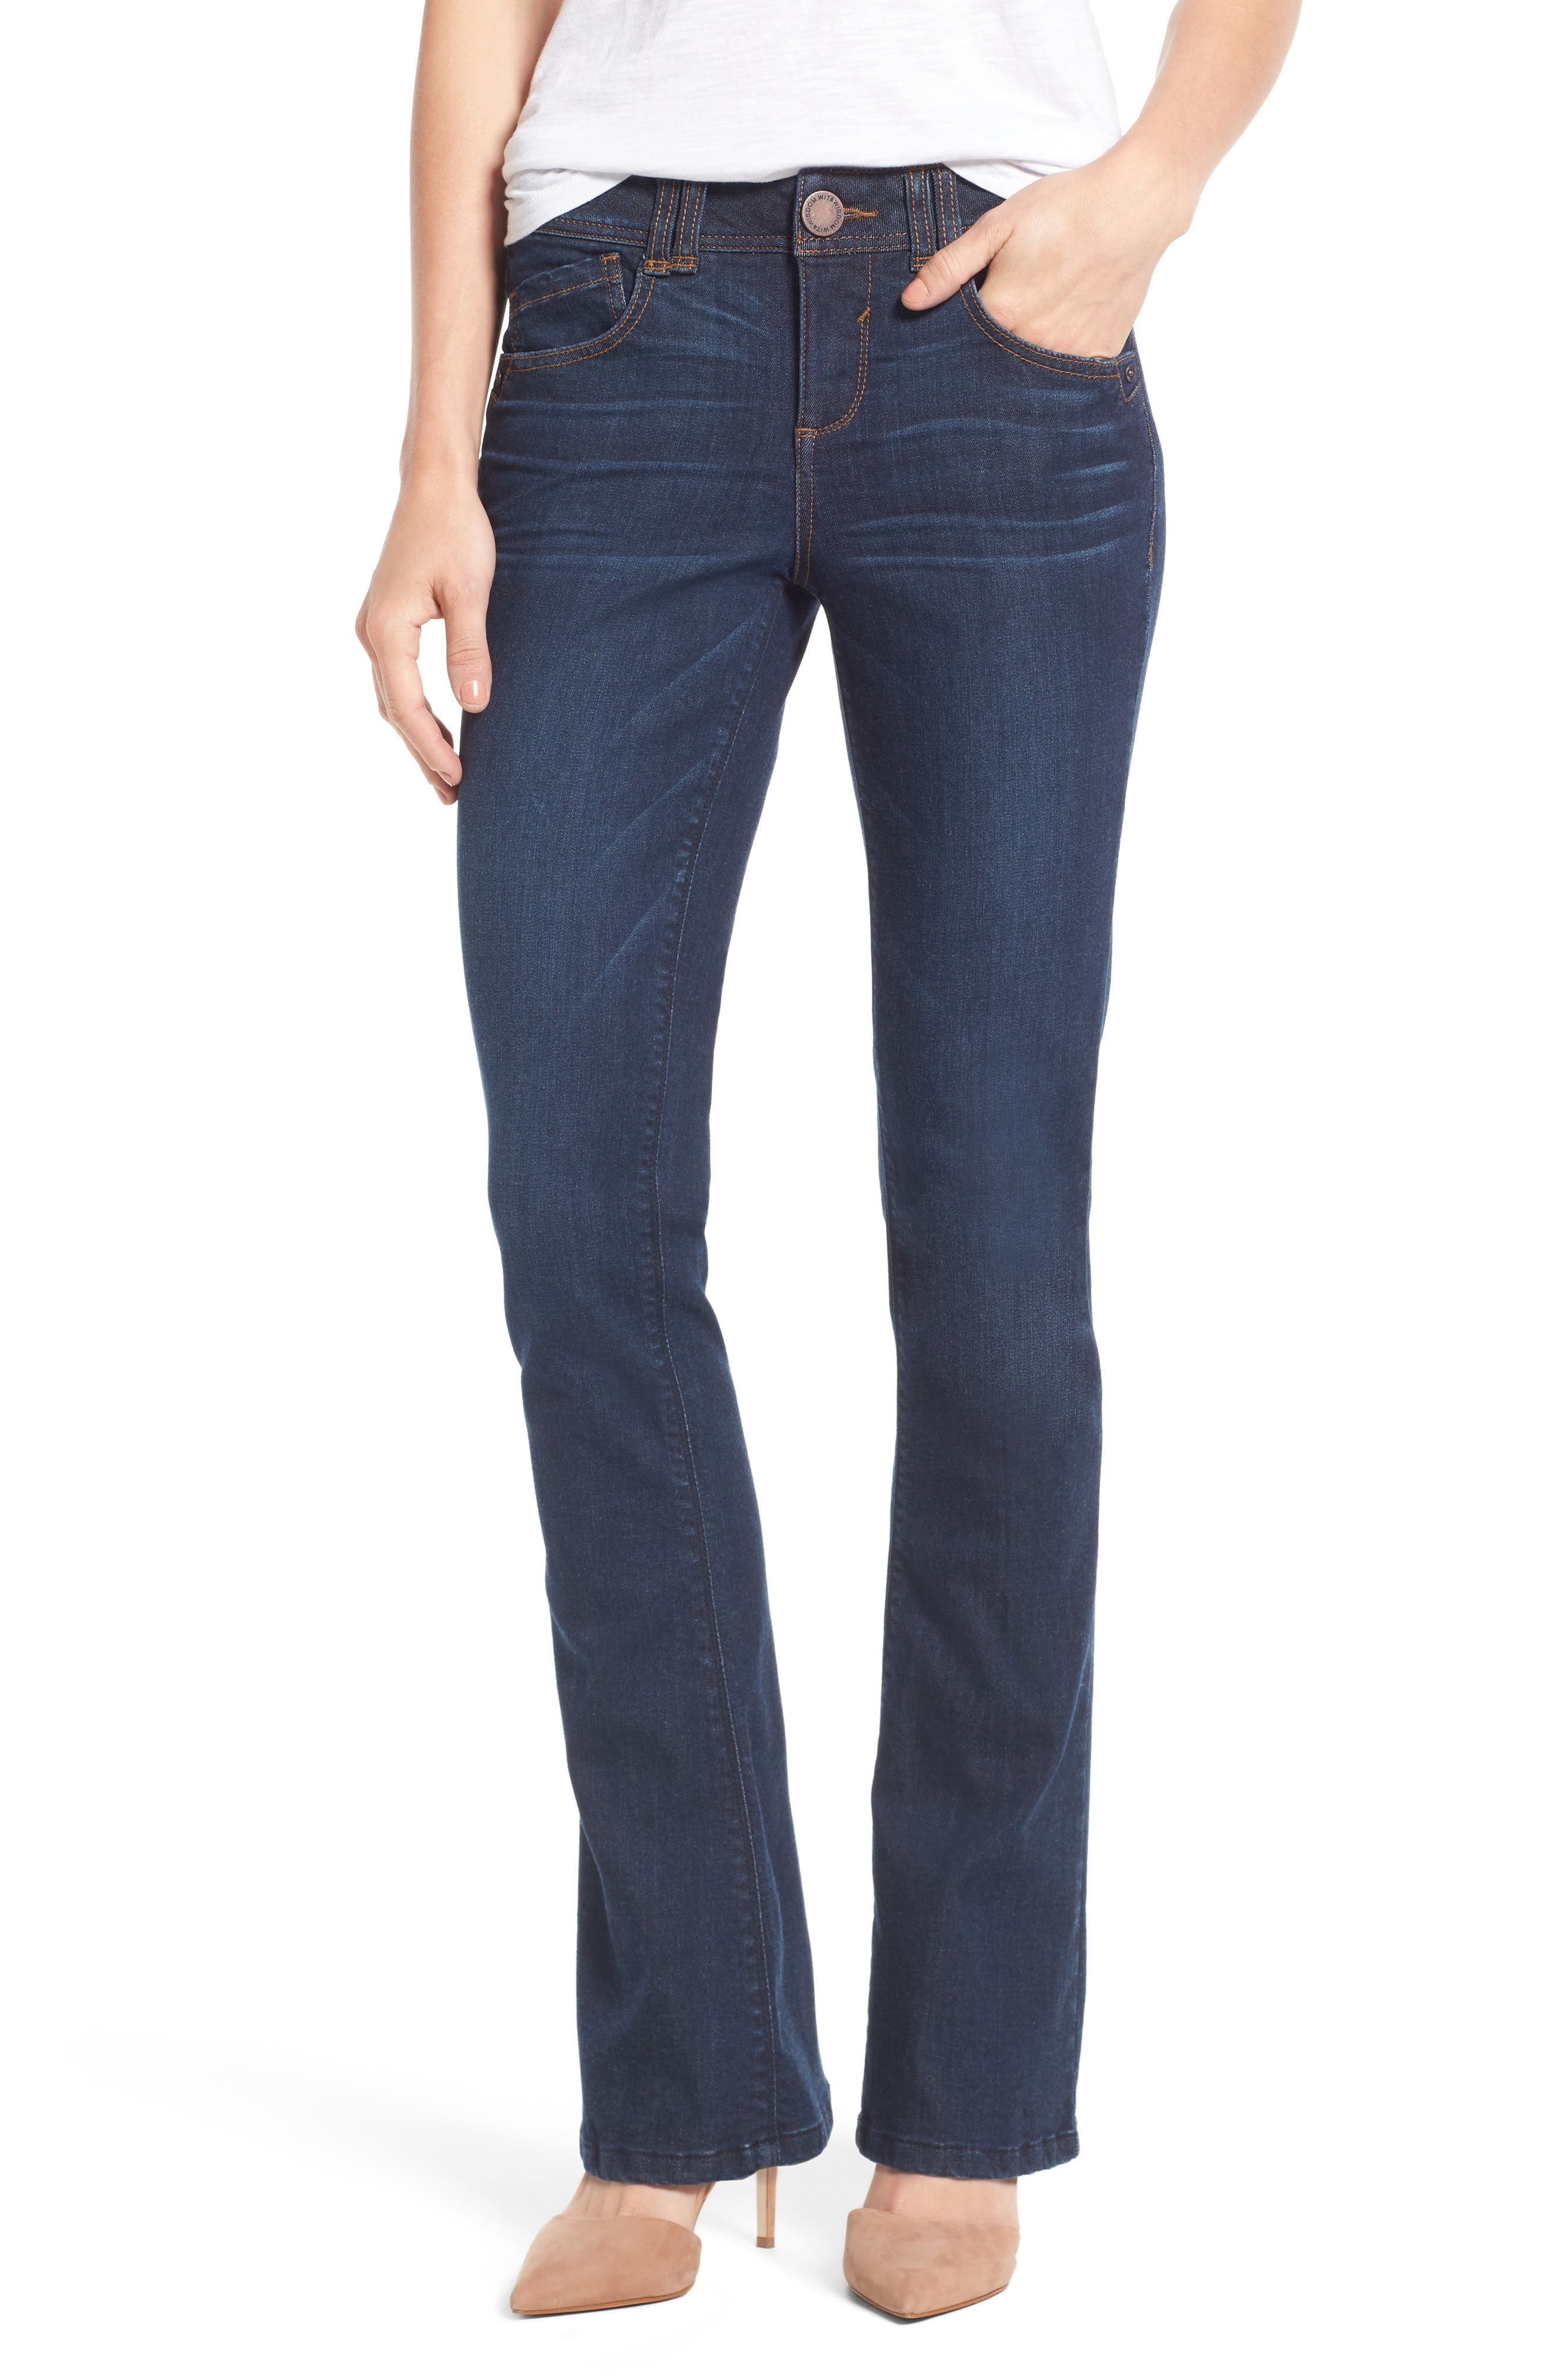 Womens Cropped Jeans - Mid Rise, Wide Leg - 14/16 - BLUE Lands End